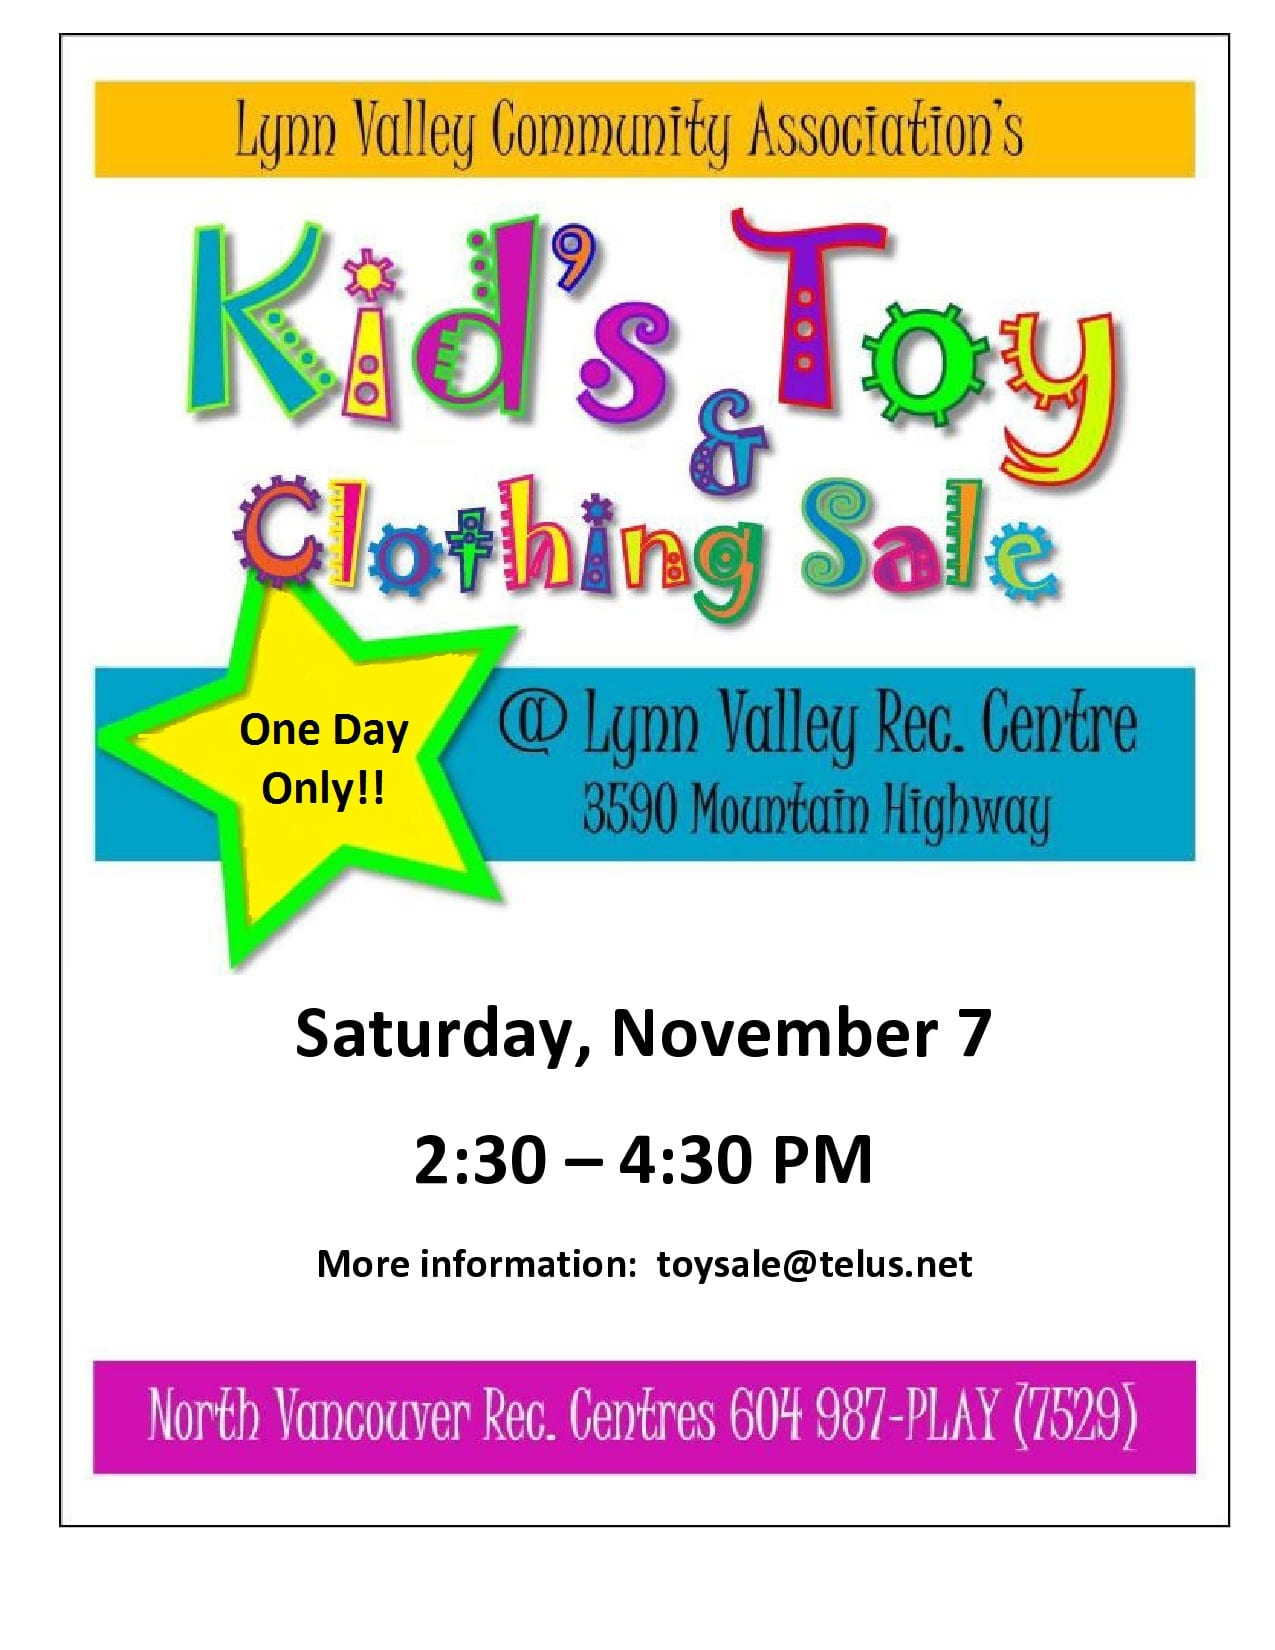 Kid's Toy & Clothing Sale at the Lynn Valley Recreation Centre